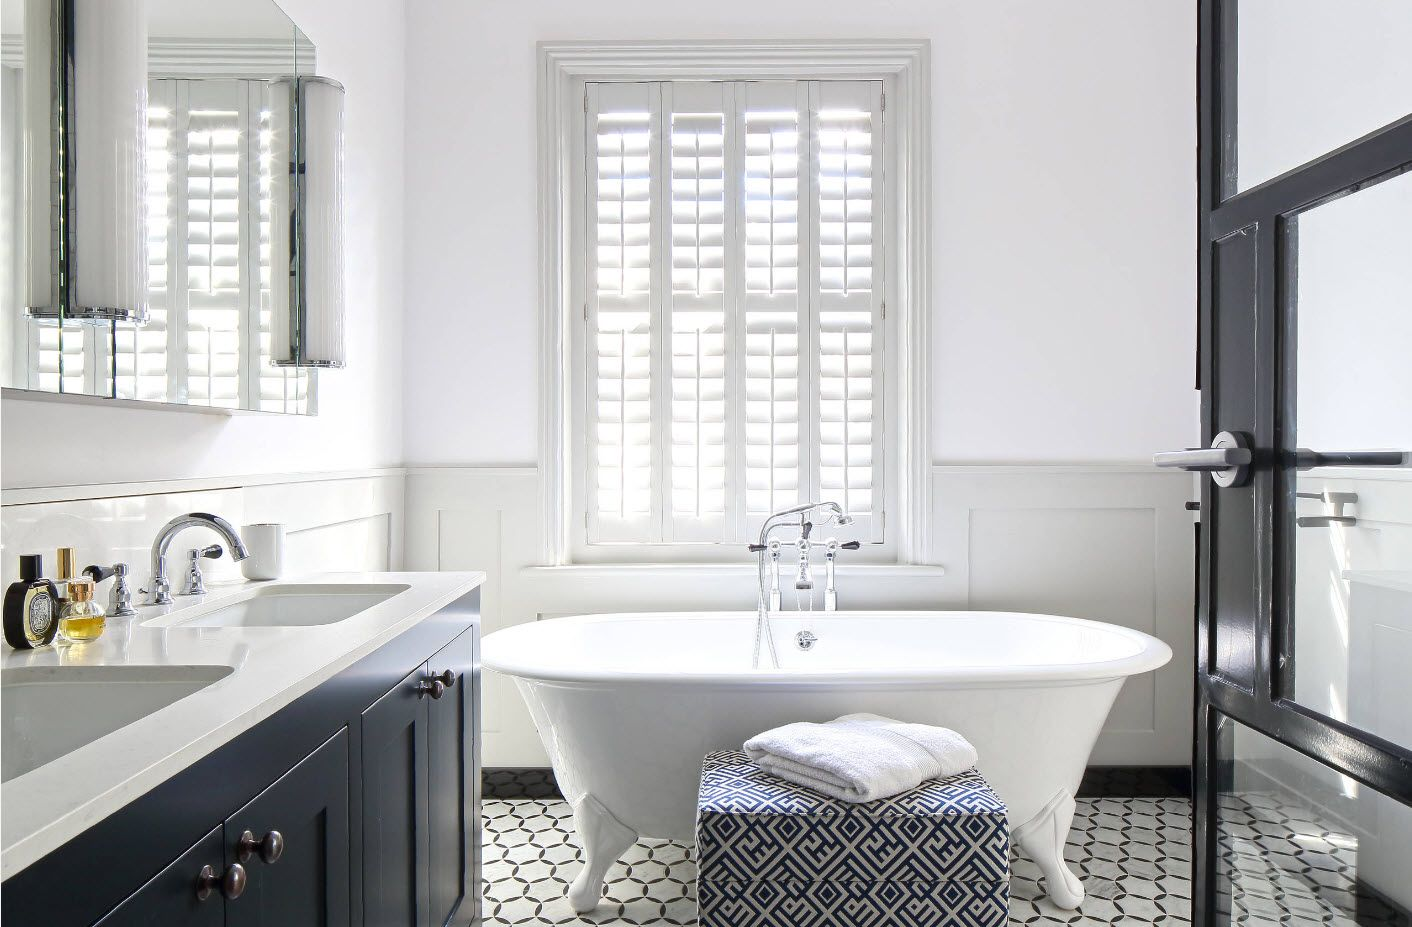 Classic bathtub form and Roman blinds in the white interior